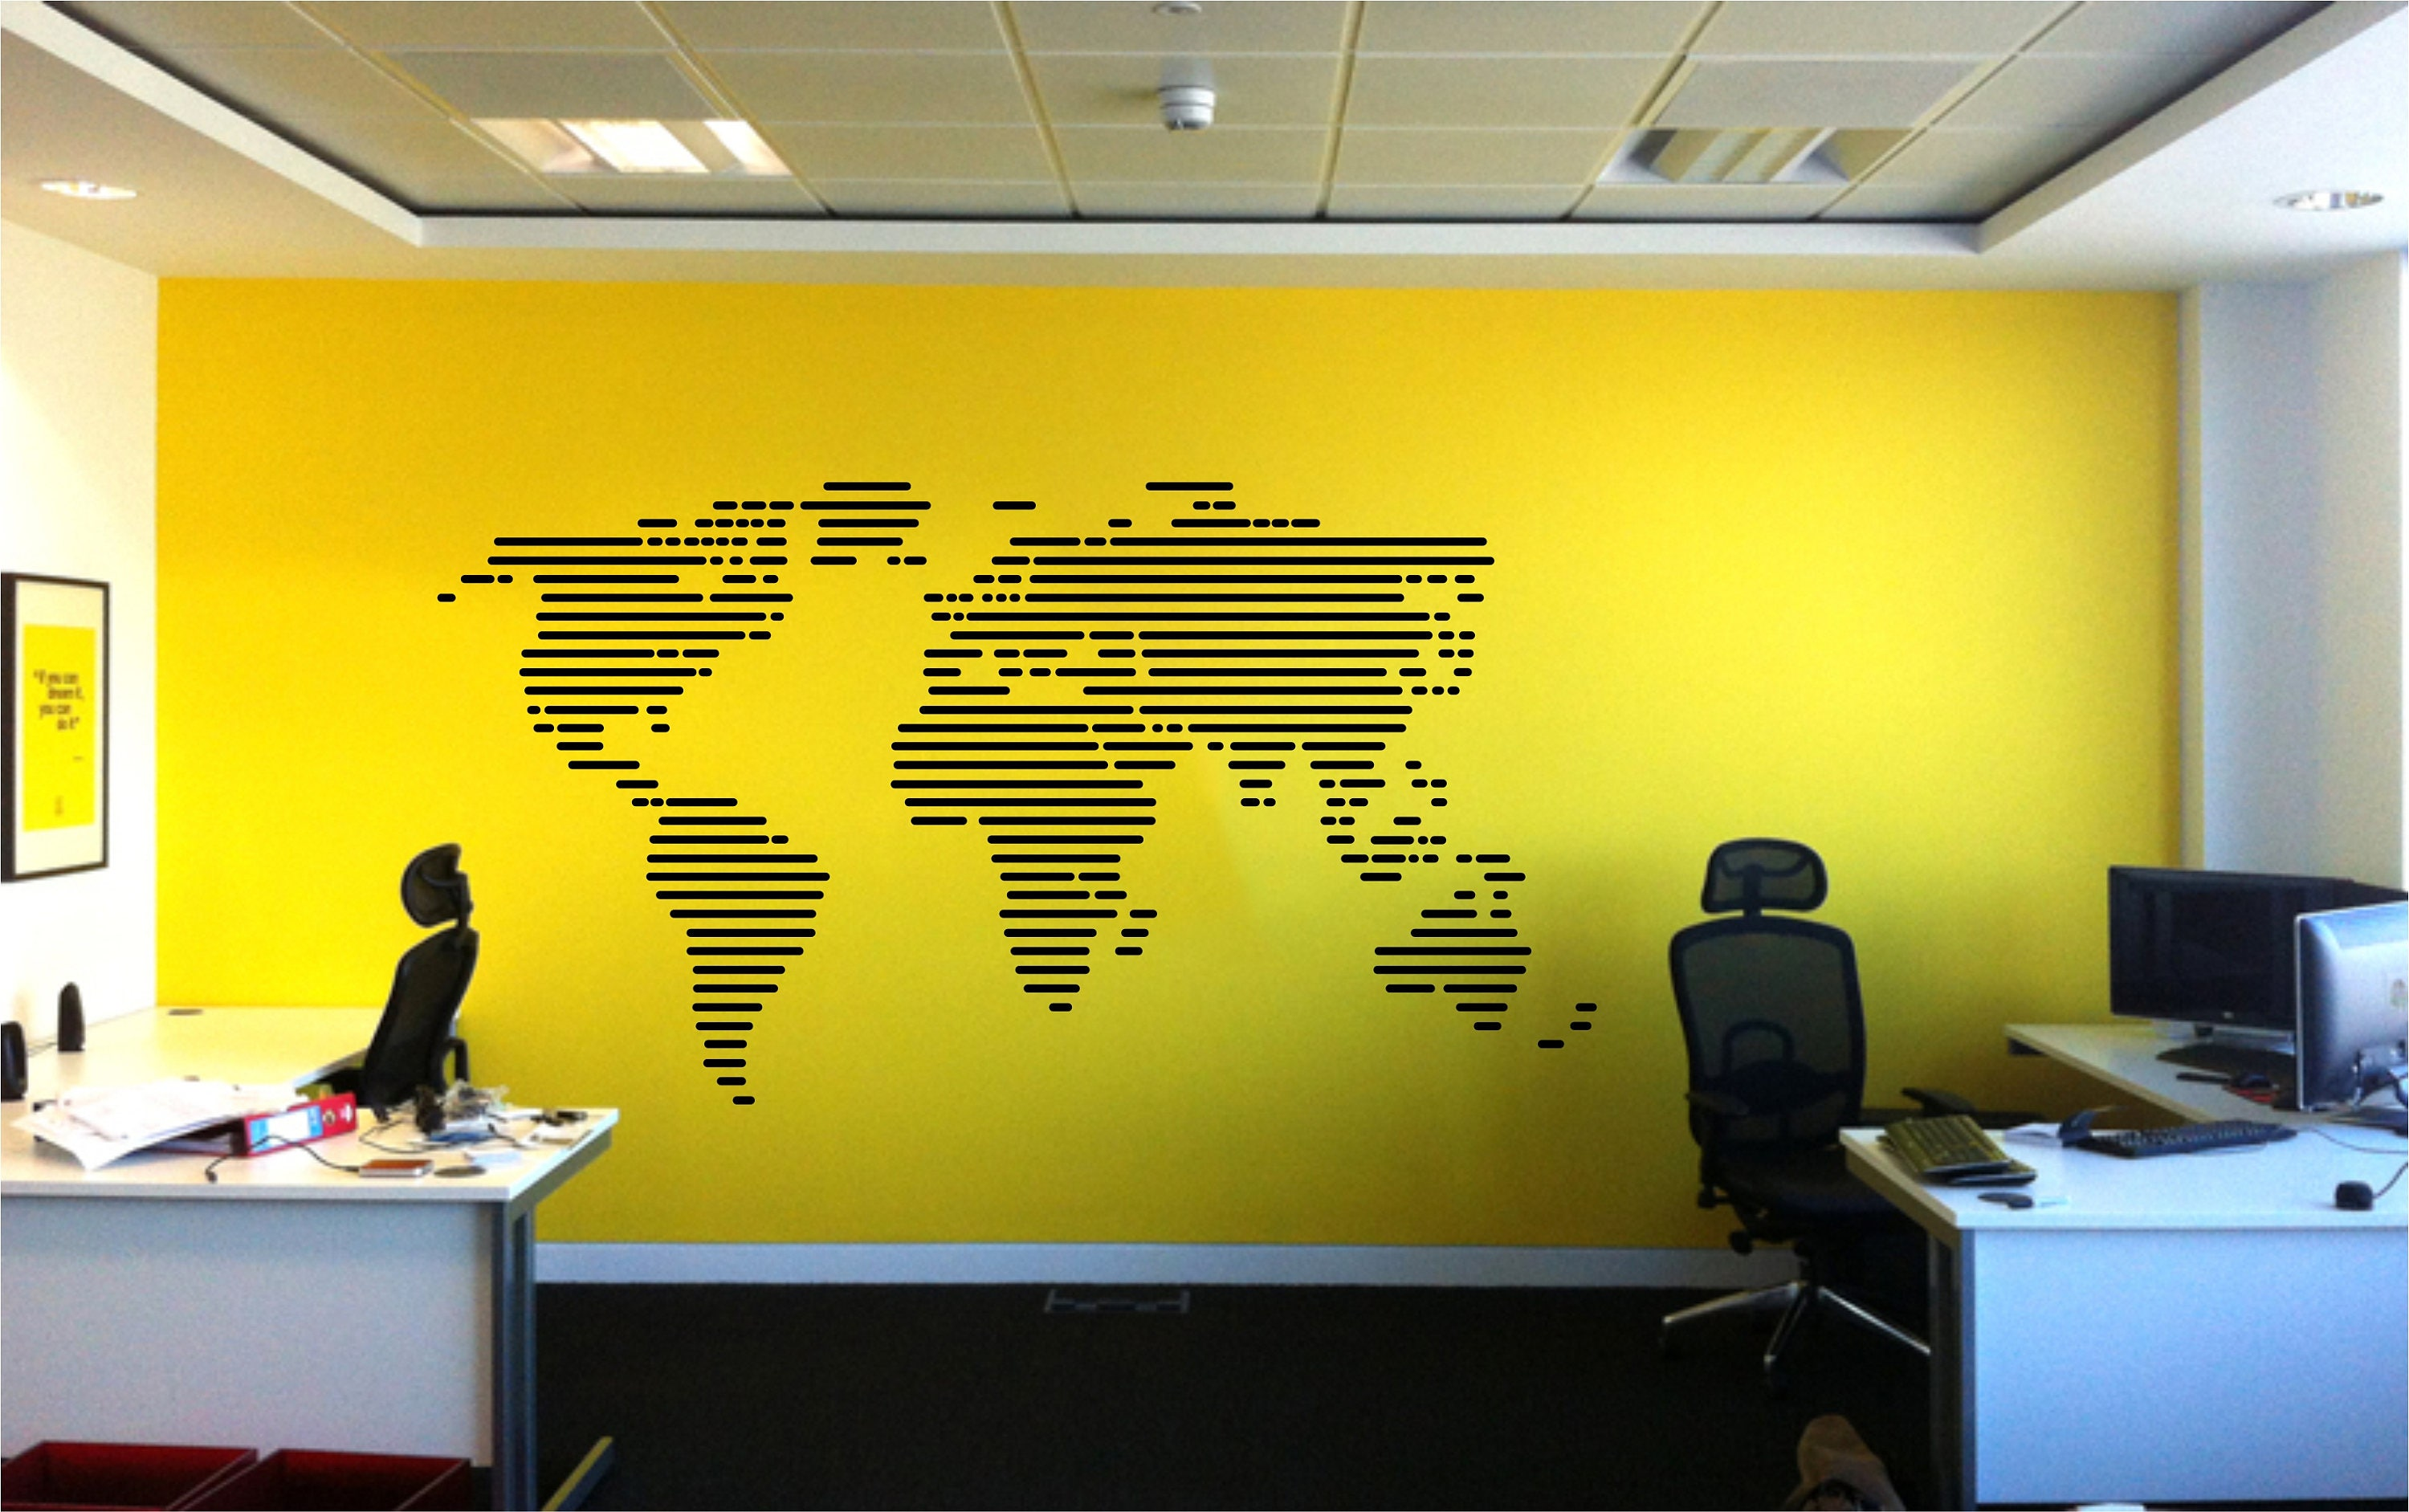 Large World Map Modern Wall Decal in Stripes for Office, Classroom ...